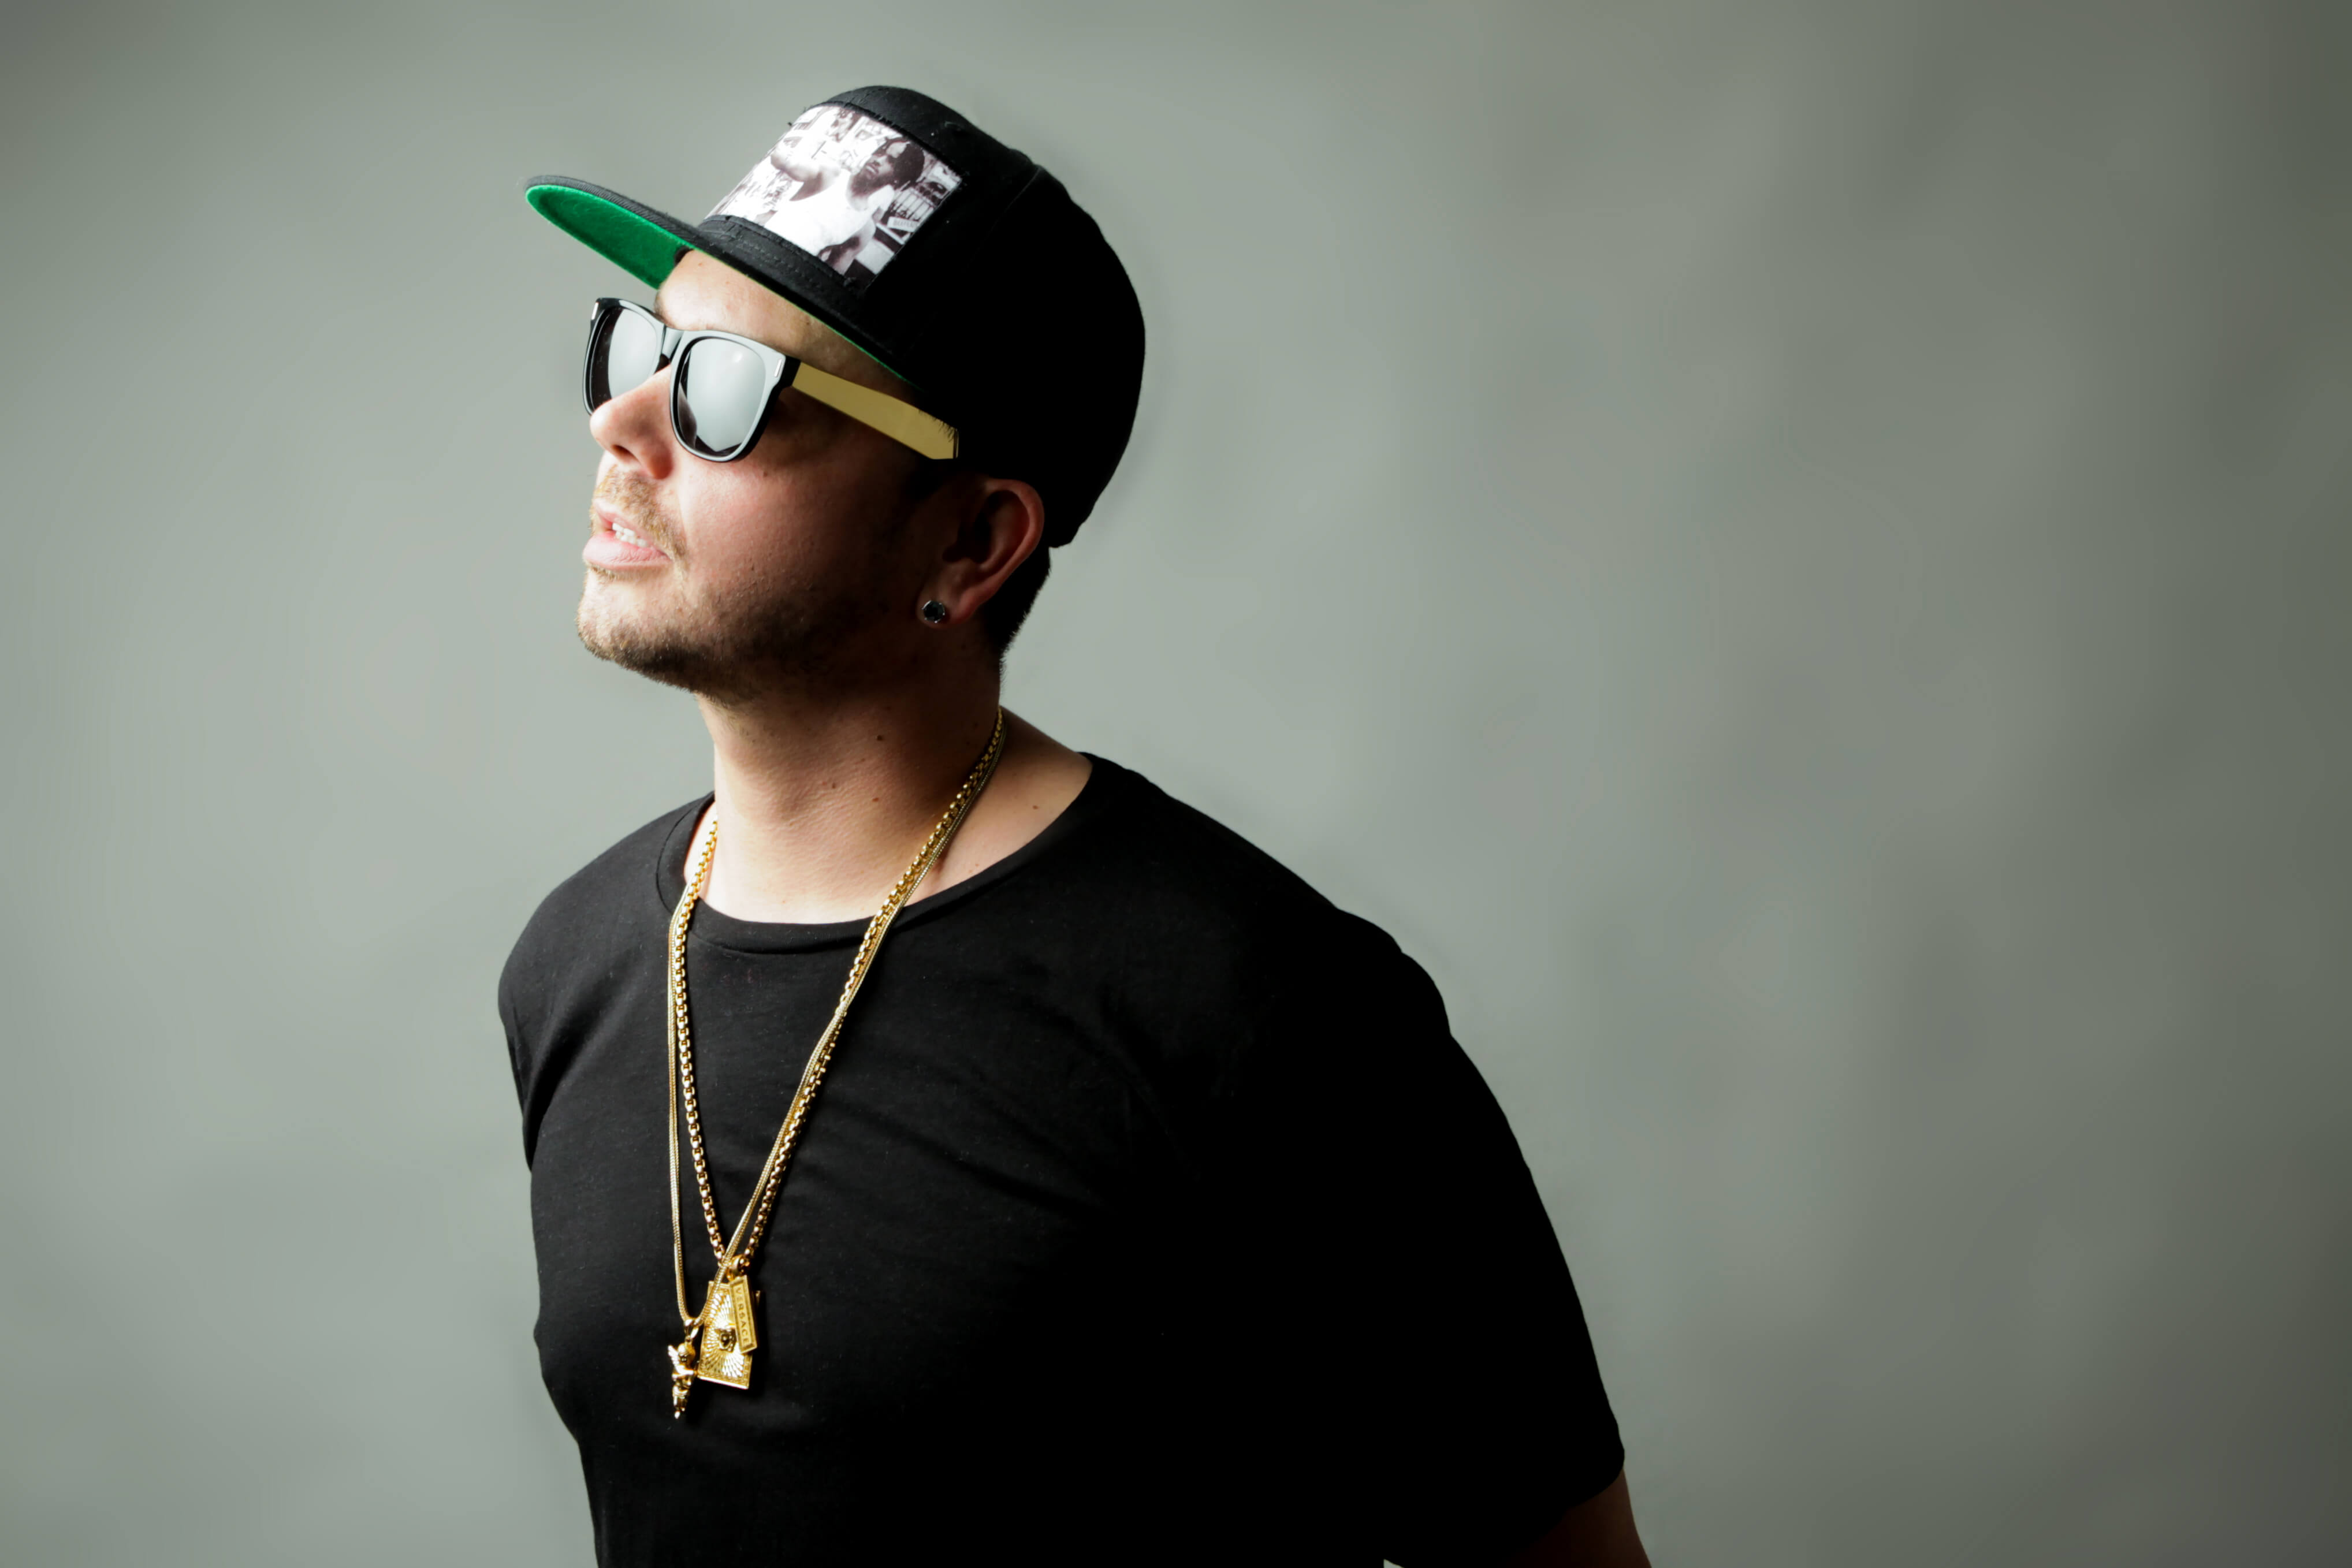 DJ Flowfly black baseball cap and sunglasses - Meet the SKAM Artist